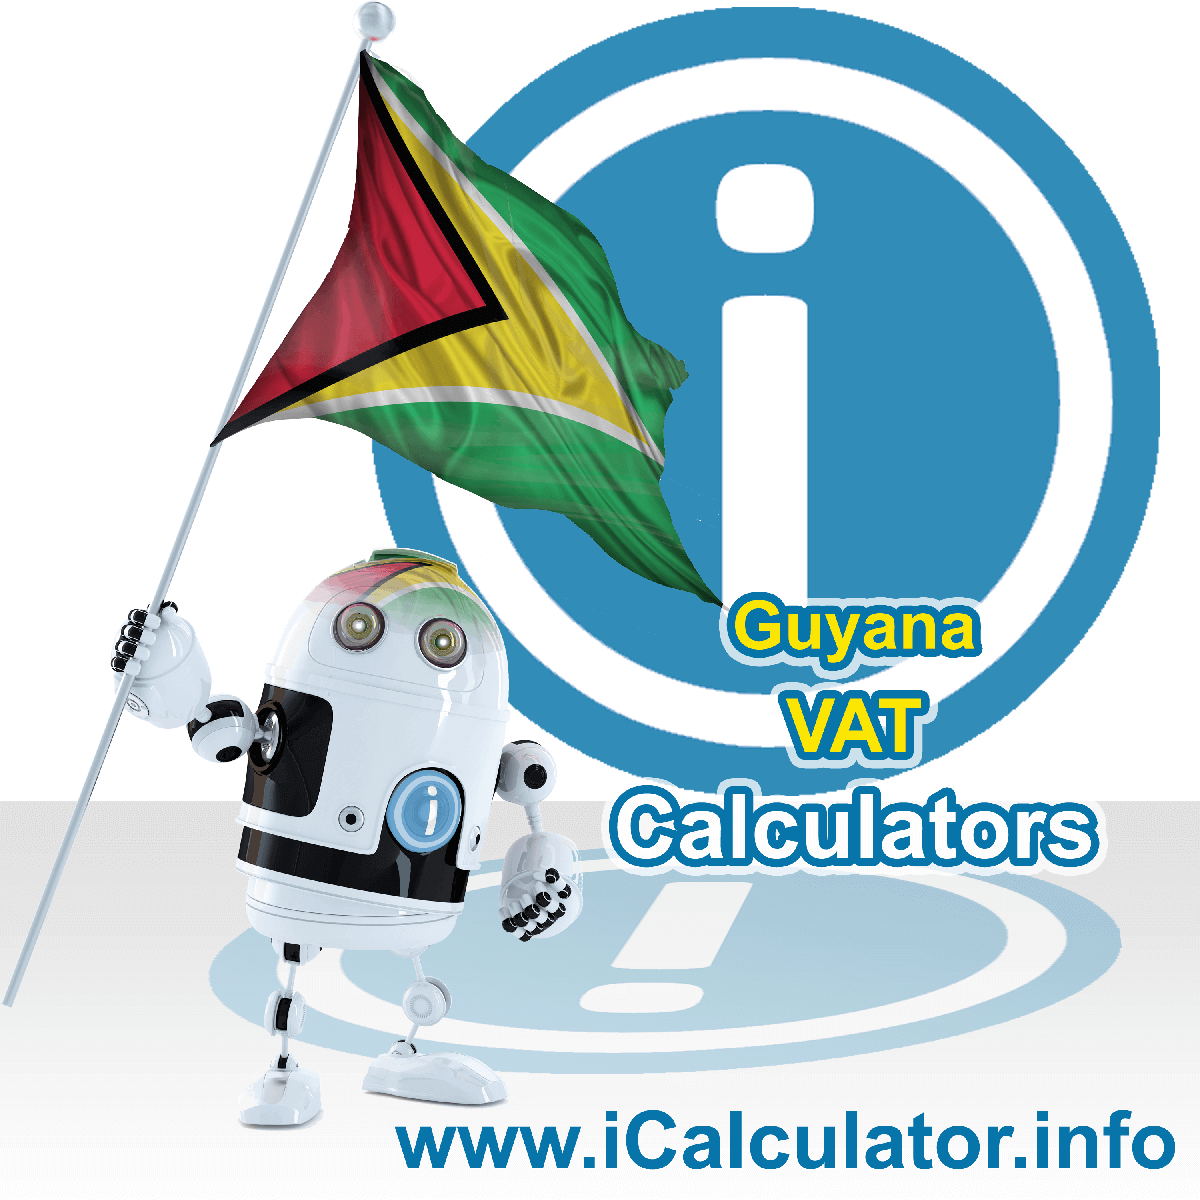 Guyana VAT Calculator. This image shows the Guyana flag and information relating to the VAT formula used for calculating Value Added Tax in Guyana using the Guyana VAT Calculator in 2021